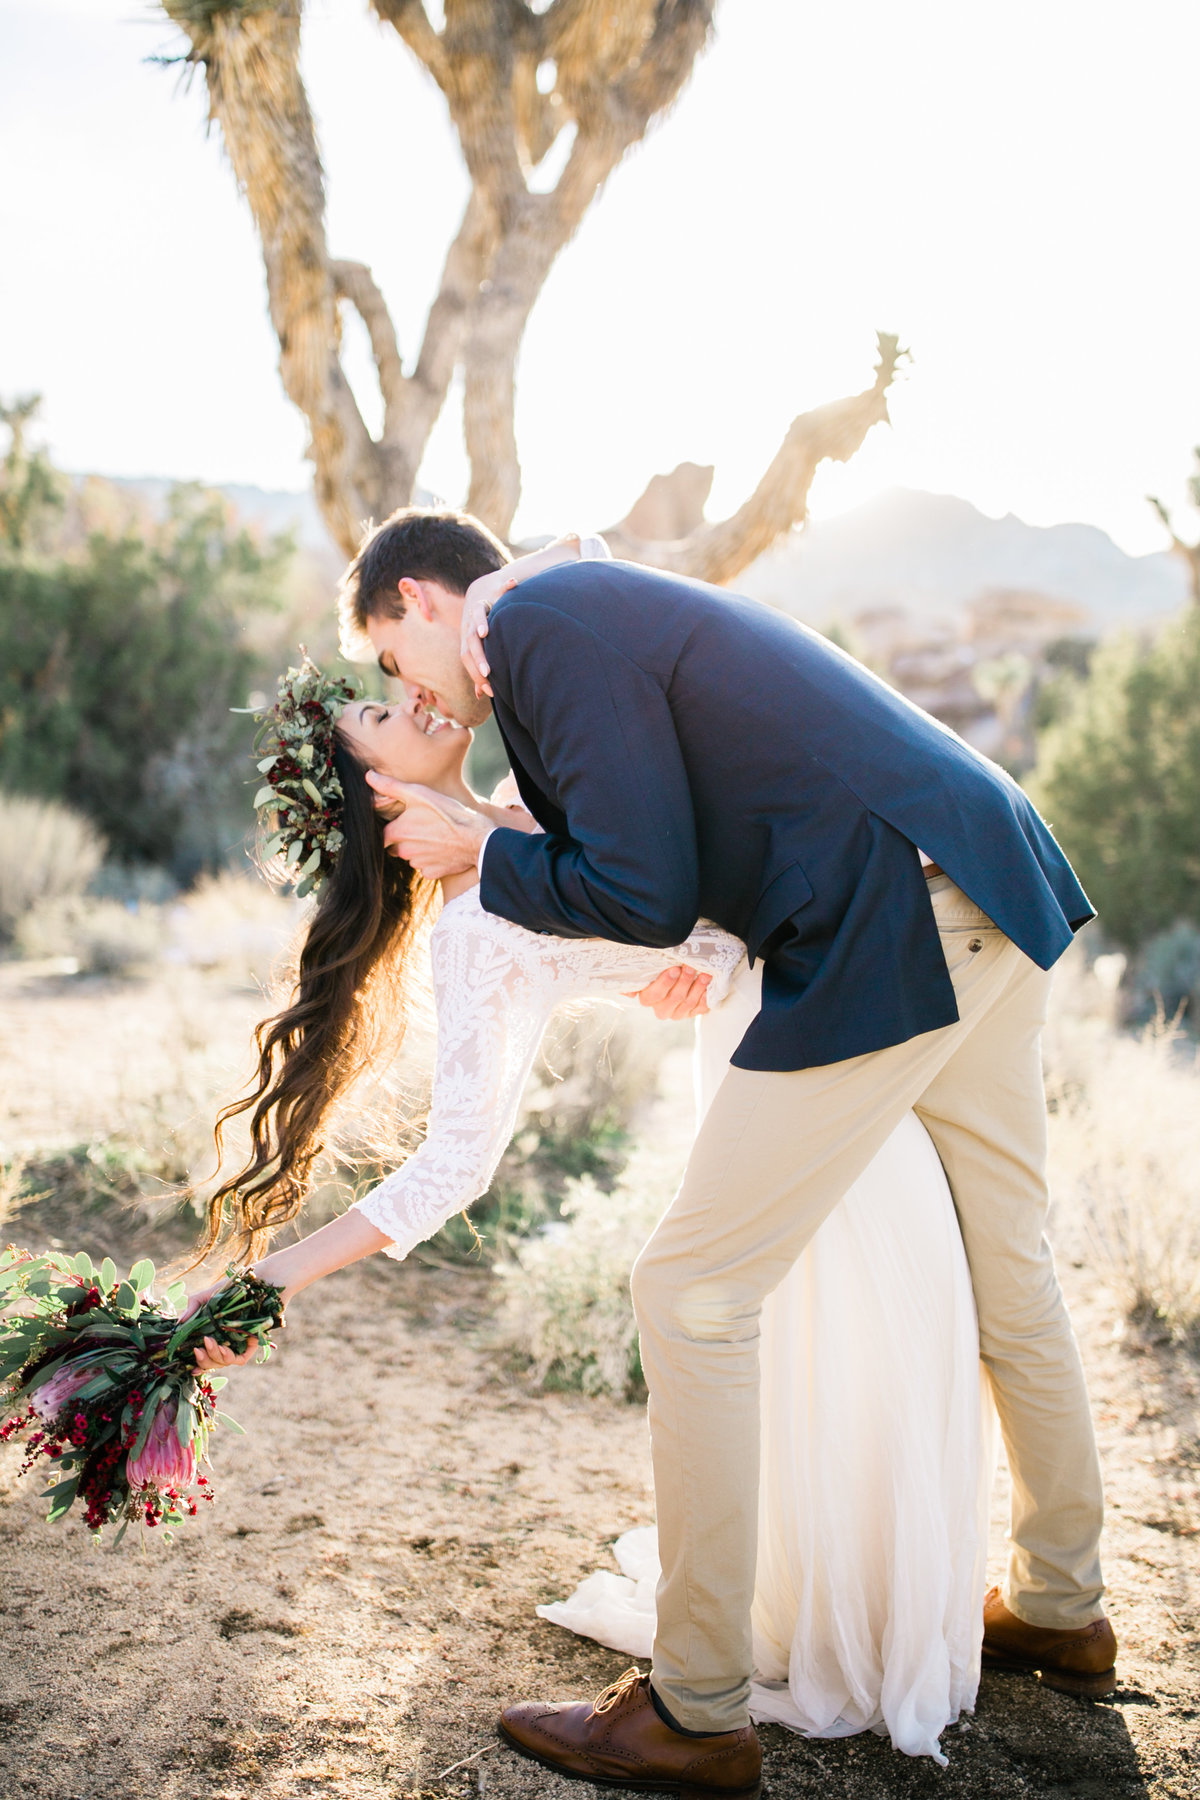 the groom dips his bride into a kiss in front of a joshua tree during their elopement